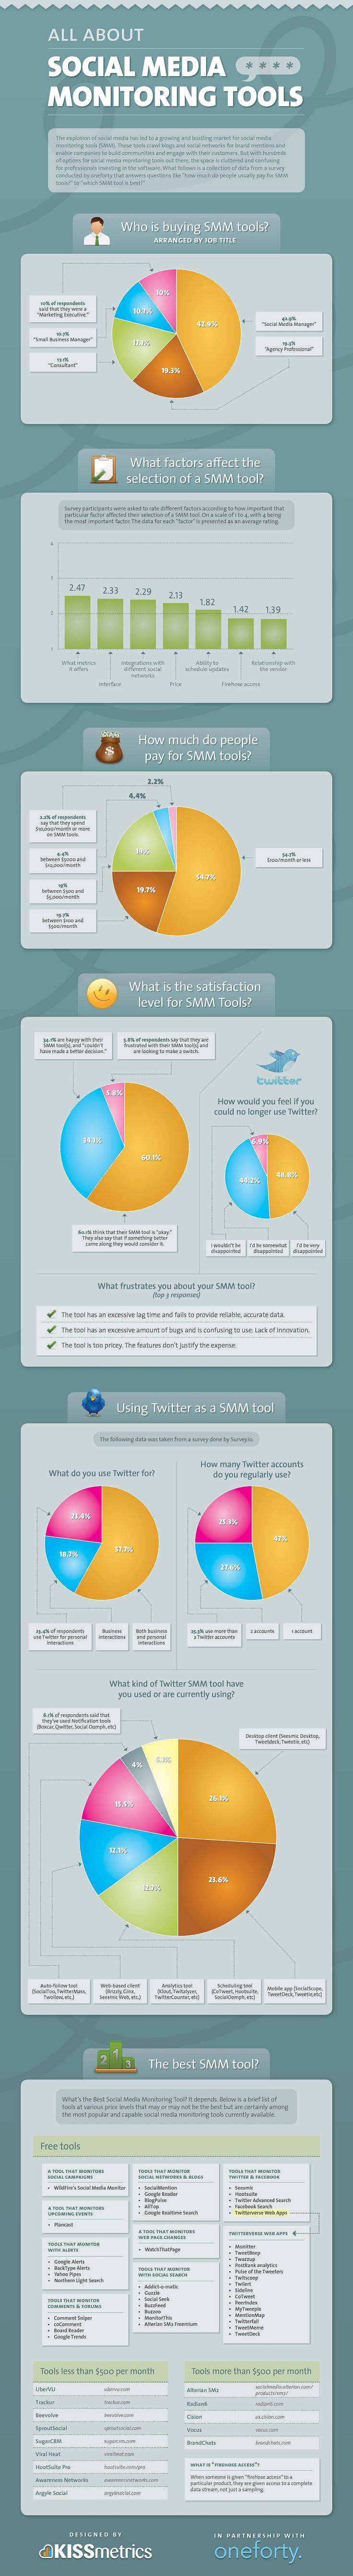 Definitive infographic on #socialmedia monitoring tools.